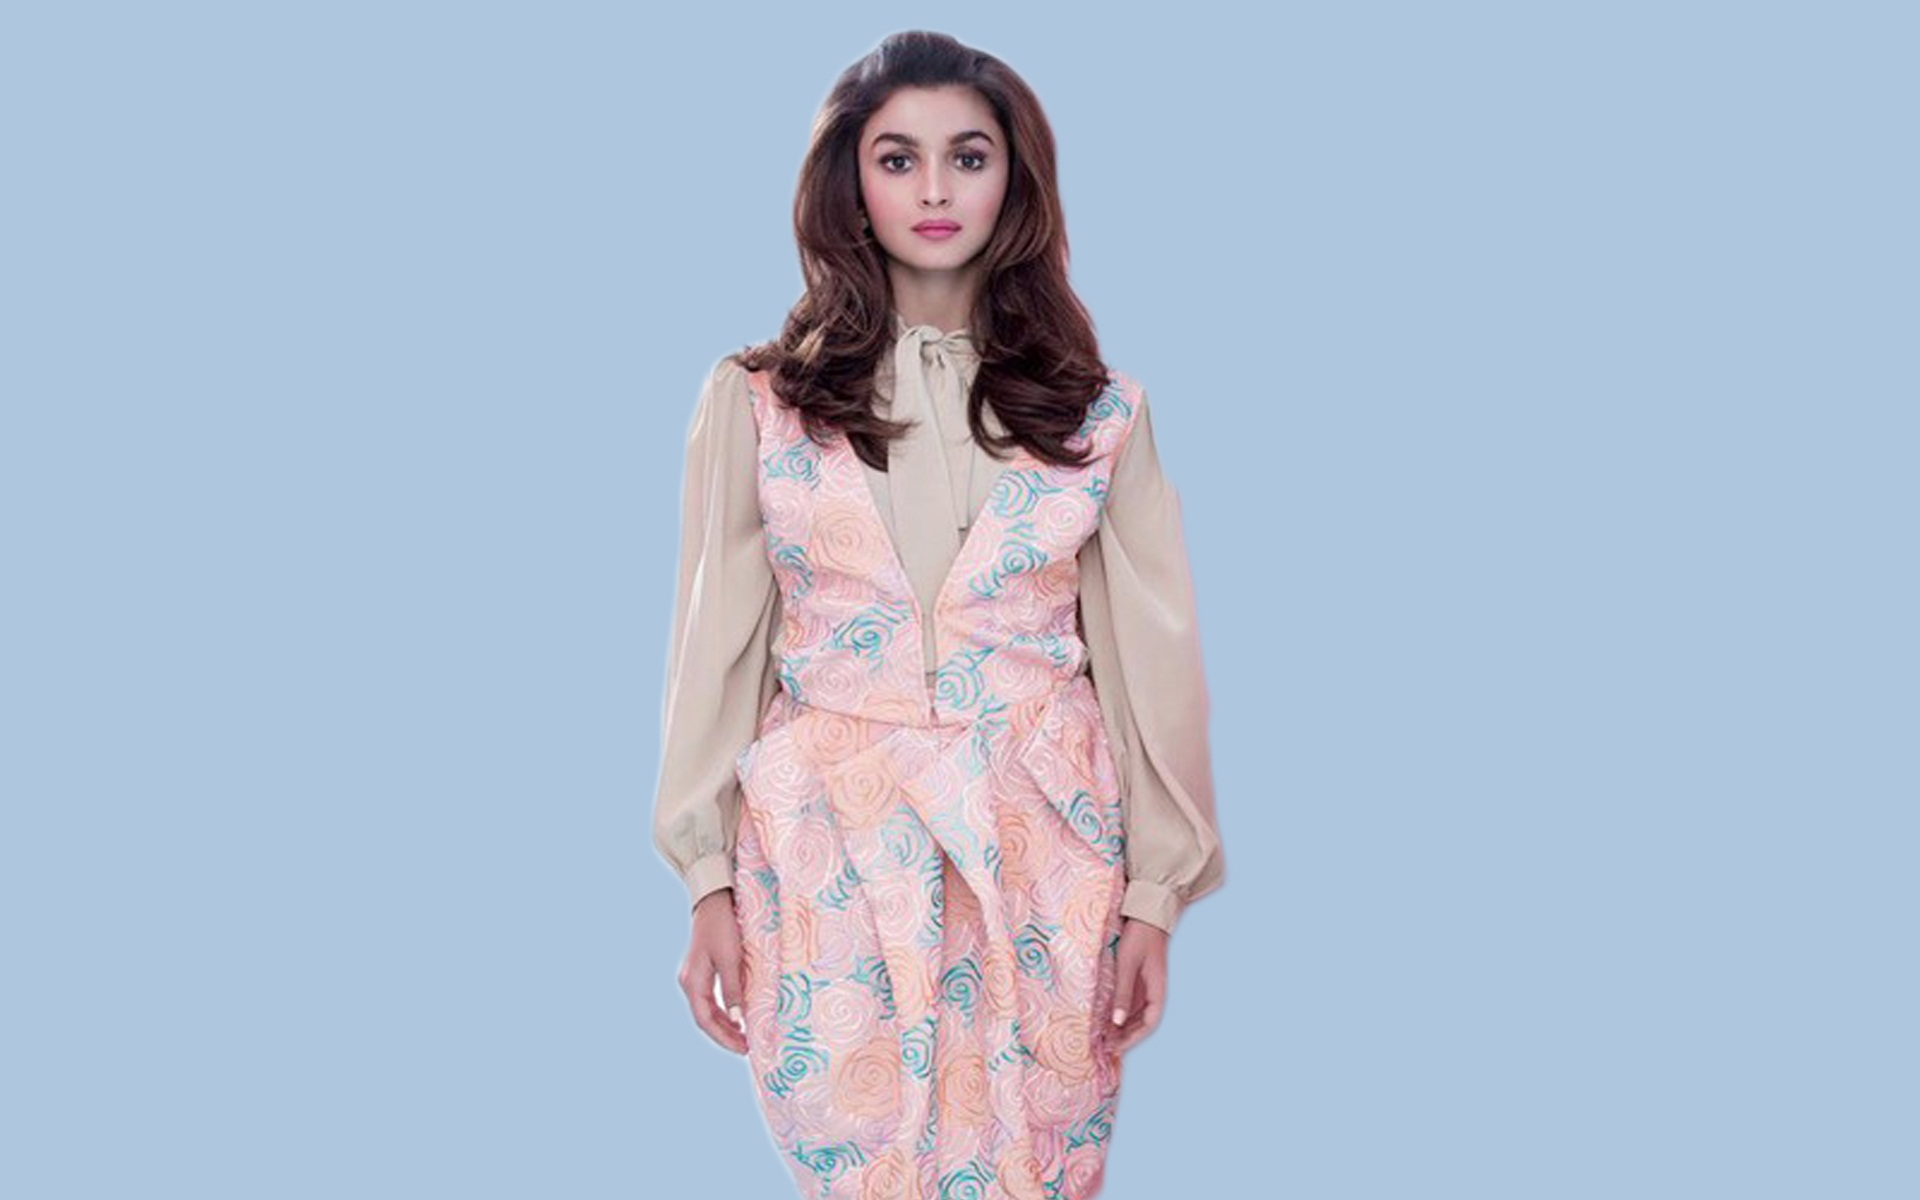 Alia Bhatt Modern Stylish Look Mobile Background Hd Images Free